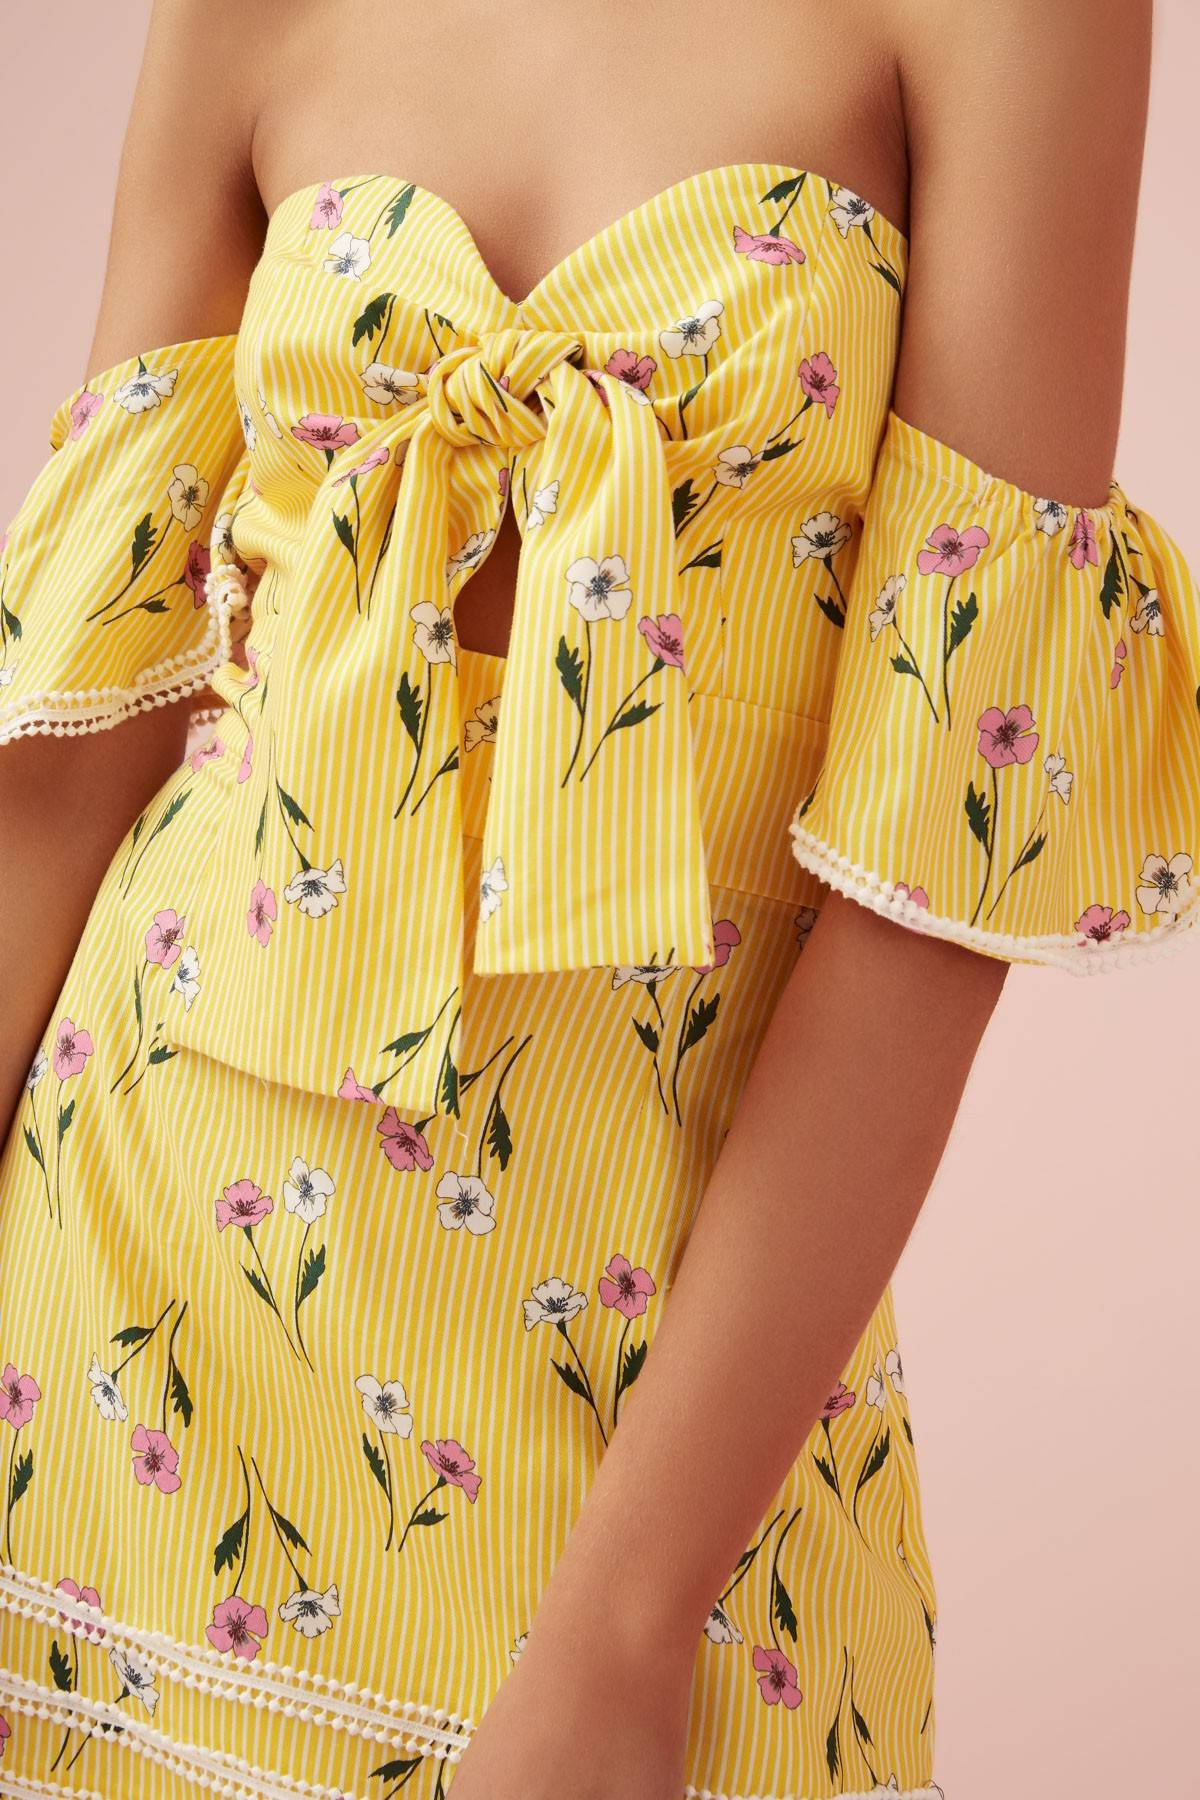 Finders Keepers Limoncello Mini Dress - Yellow Floral